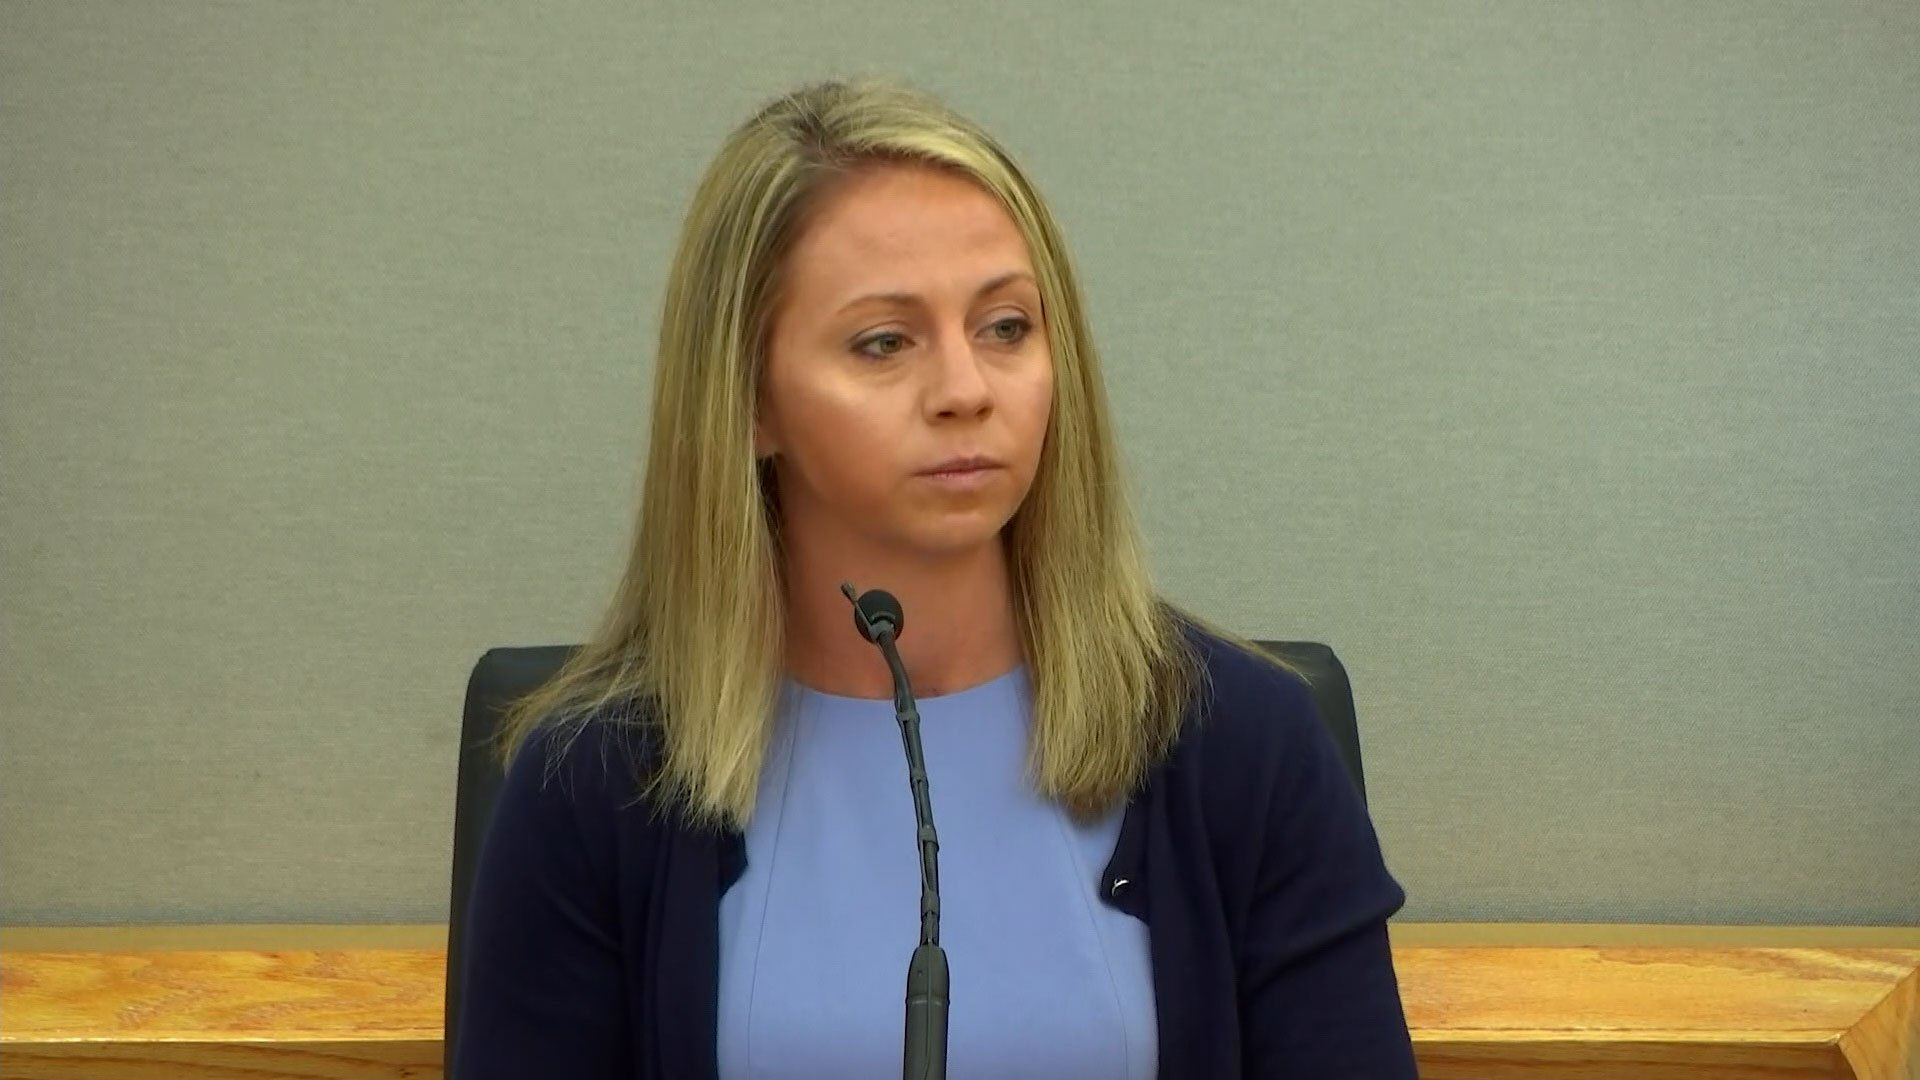 Amber Guyger appears in a Dallas courtroom on Sept. 27, 2019. (Credit: CNN)